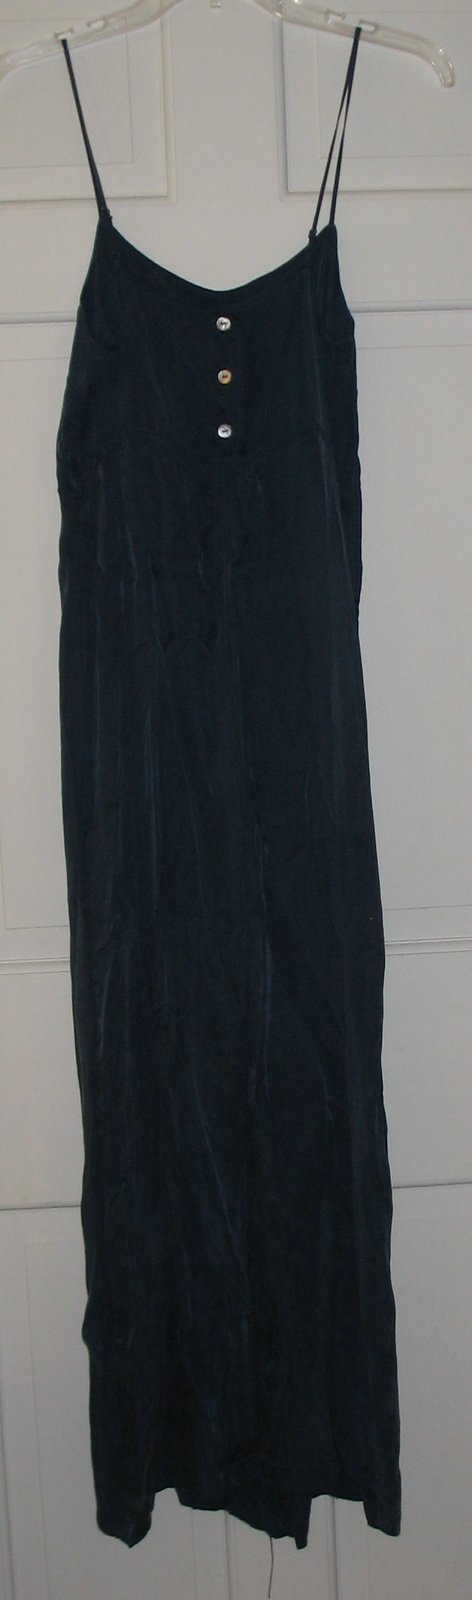 Express Midnight Blue Evening Cocktail Dress Sz 7/8 image 2